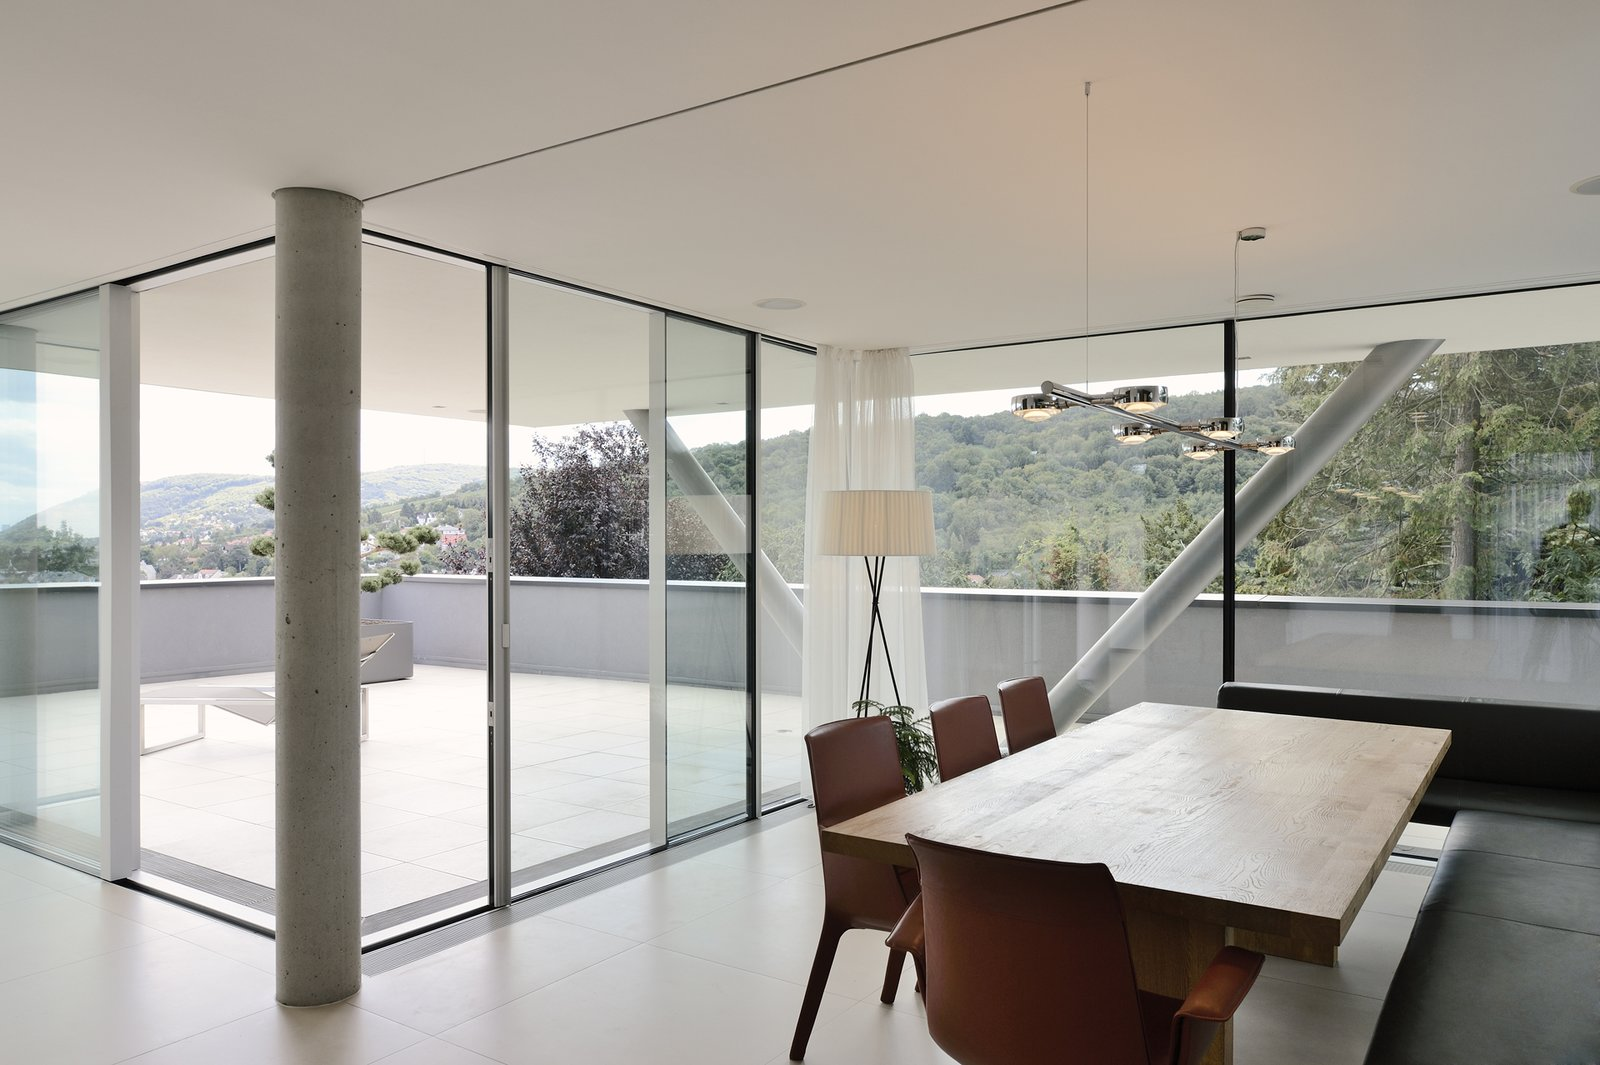 Dining table with the view H_O by Architect Zoran Bodrozic